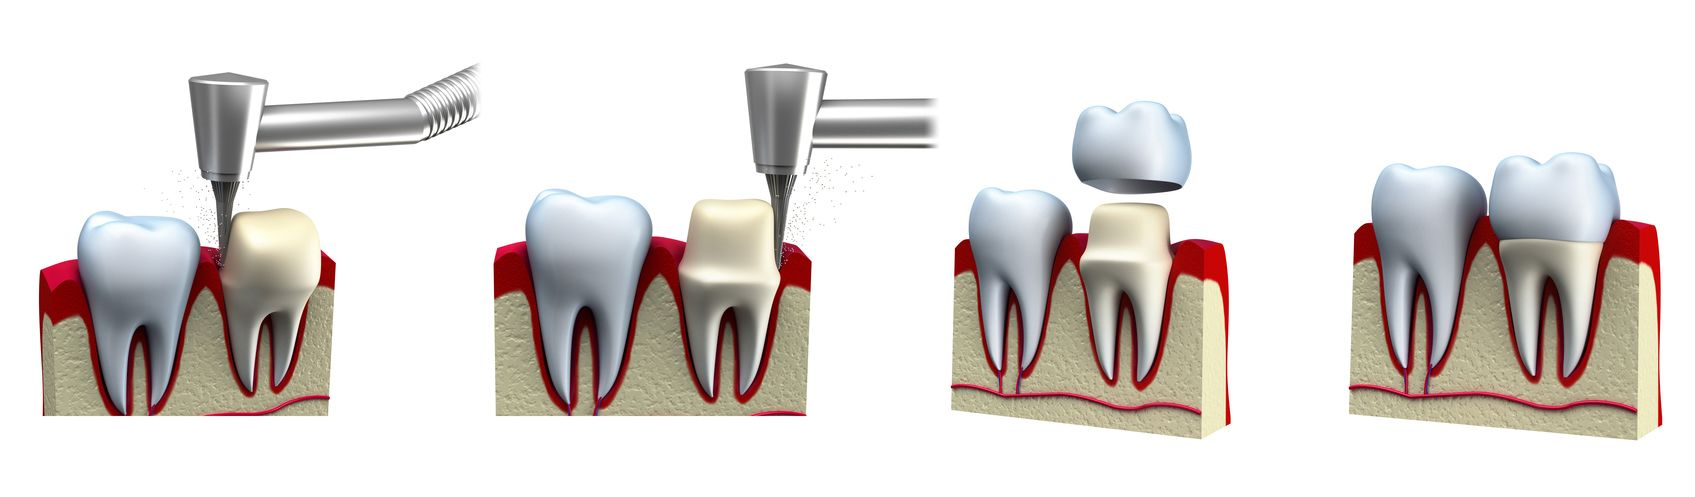 Four-panel digital image of dental crown placement process